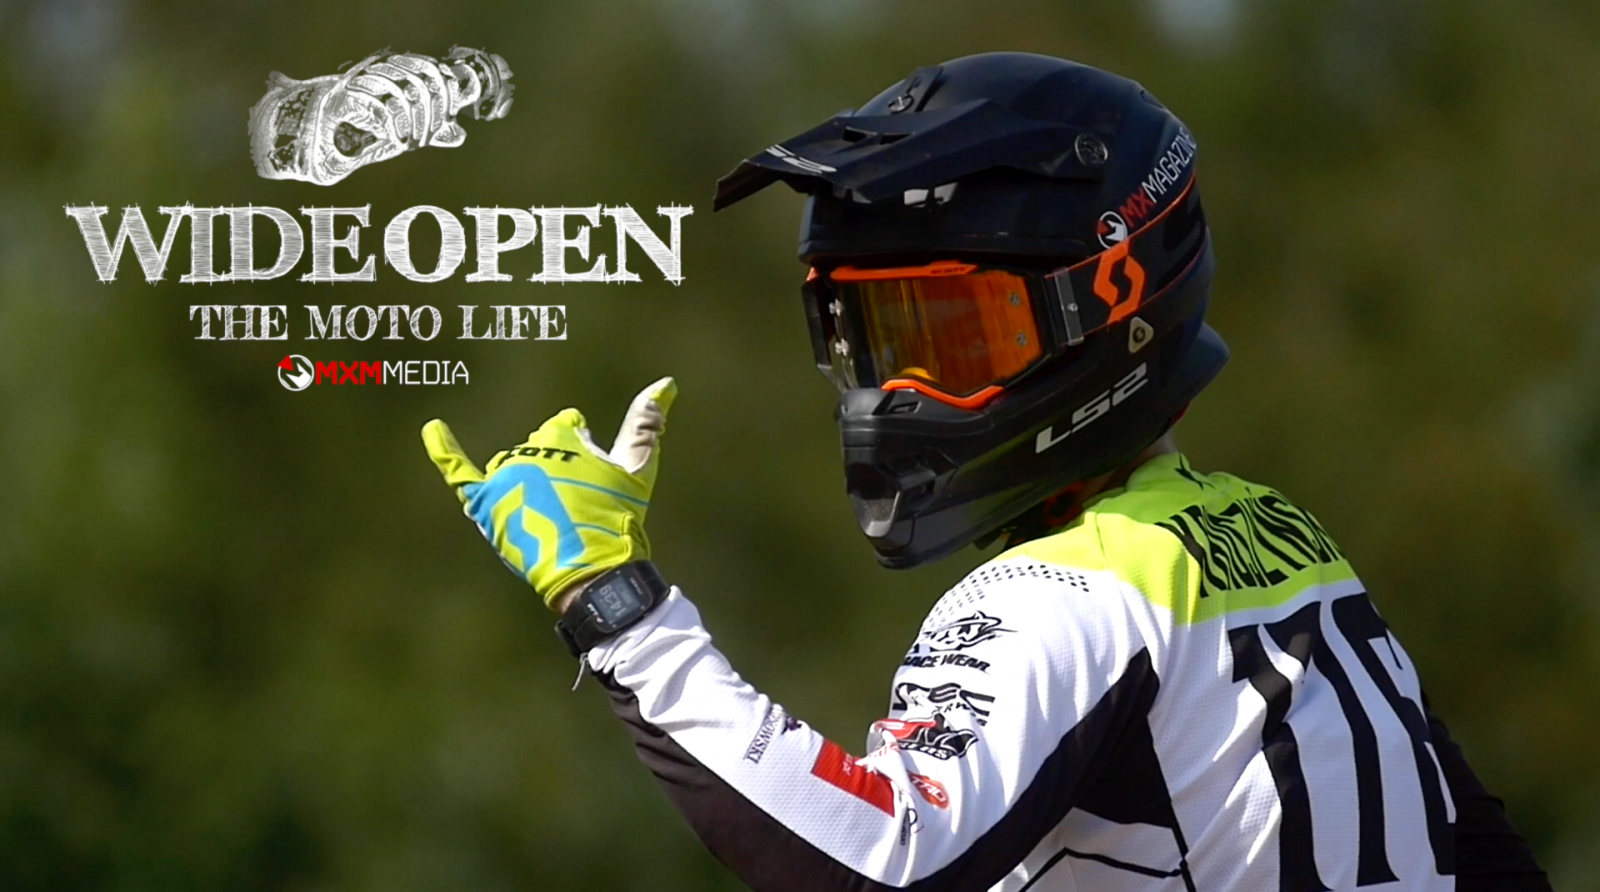 Full Movie - WIDEOPEN the MOTO Life by #MXMMedia